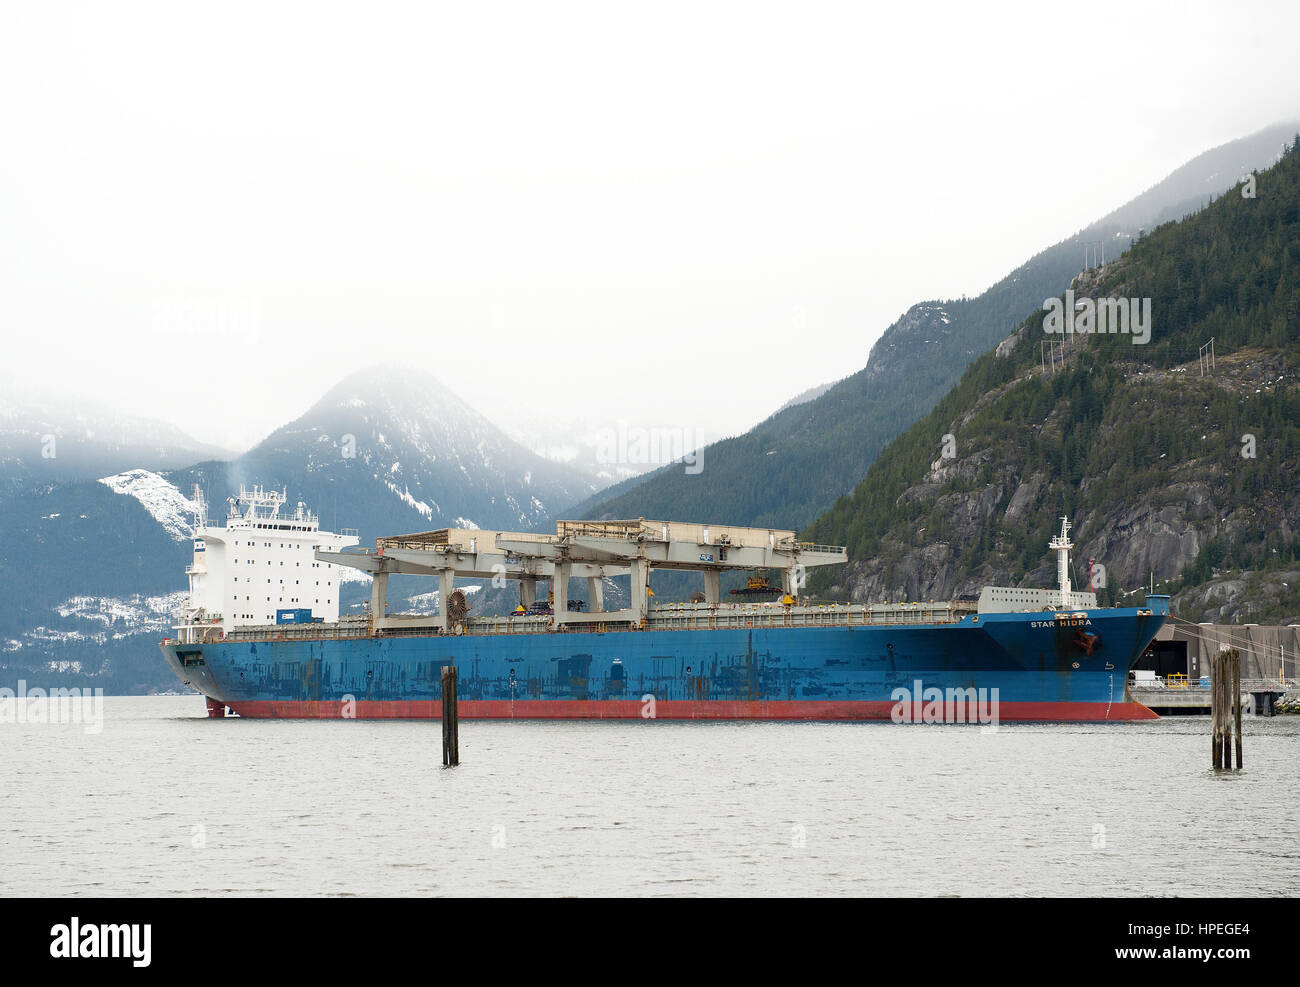 The Star Hidra moored at the Squamish Terminals cargo port in Howe Sounds.  Squamish BC, Canada. - Stock Image